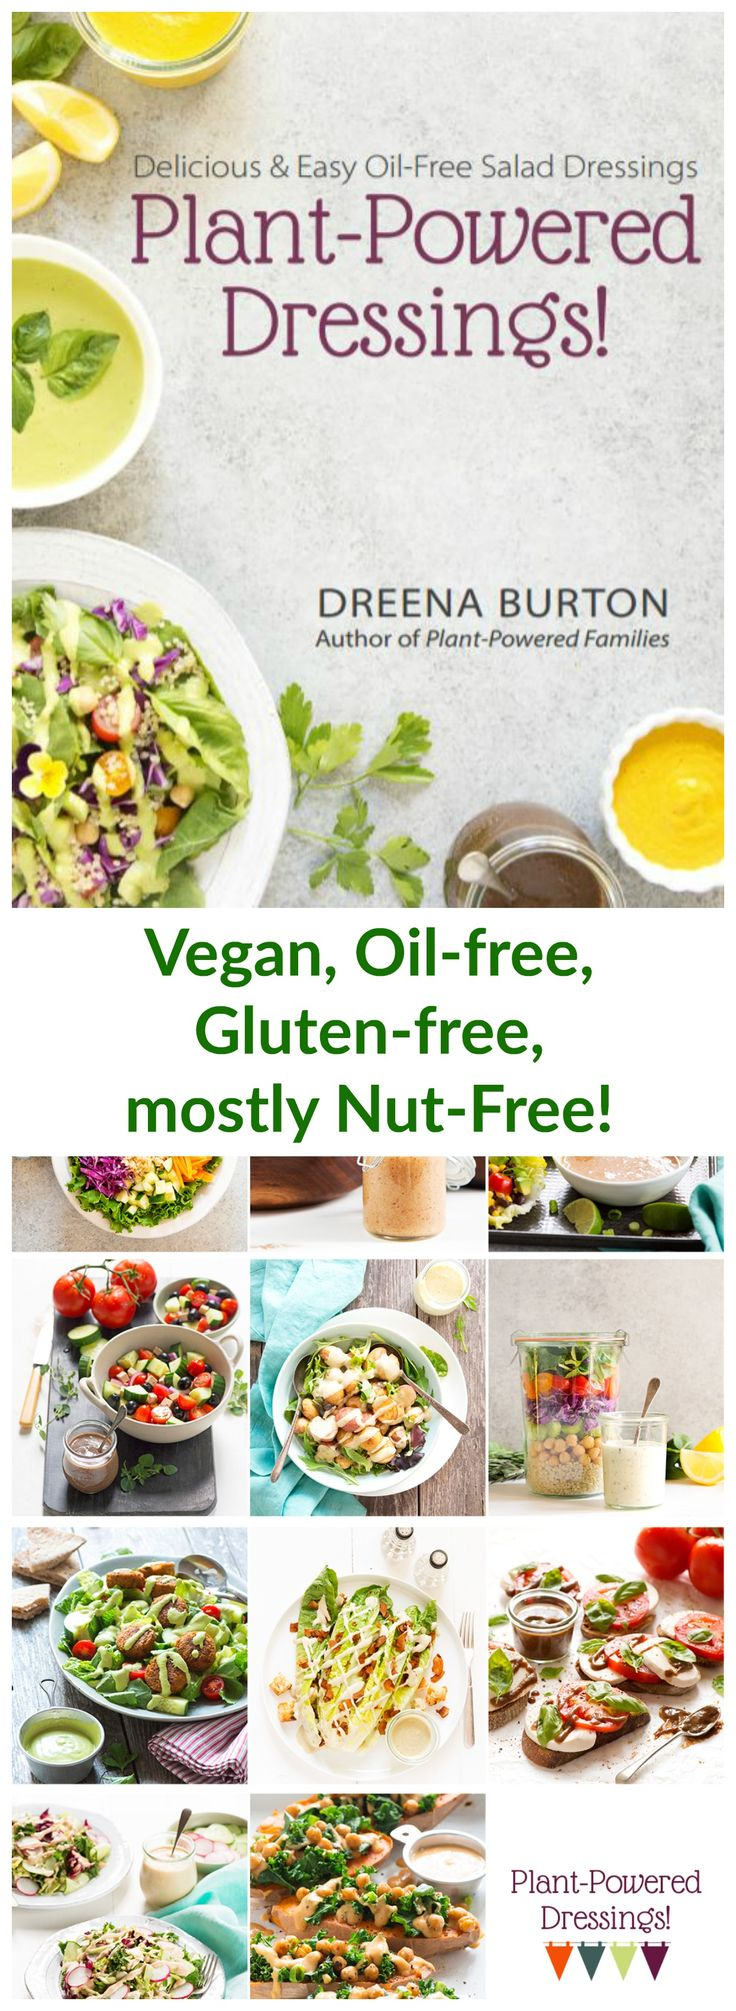 NOW here! Oil-Free Plant-Powered Salad Dressings! #vegan plantpoweredkitchen.com